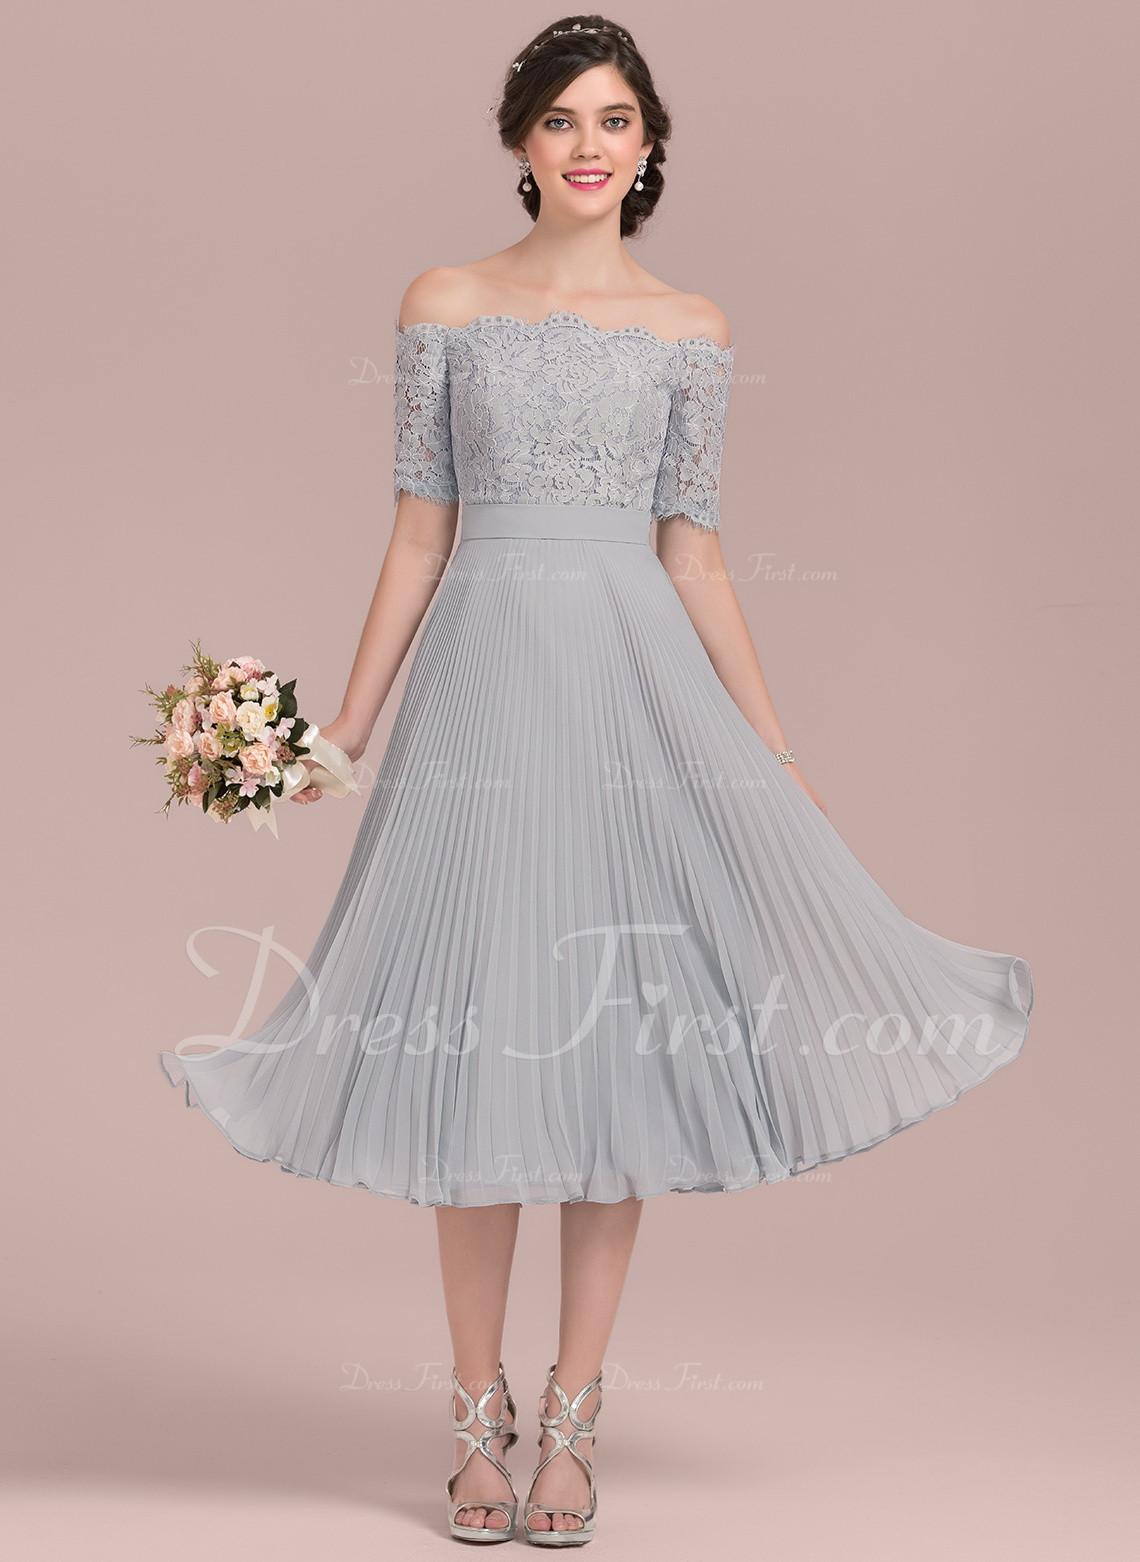 dbb1005fcdd73 Bridesmaid Dresses; #126435. Loading zoom. Loading. Color: As Picture. A- Line/Princess Off-the-Shoulder ...